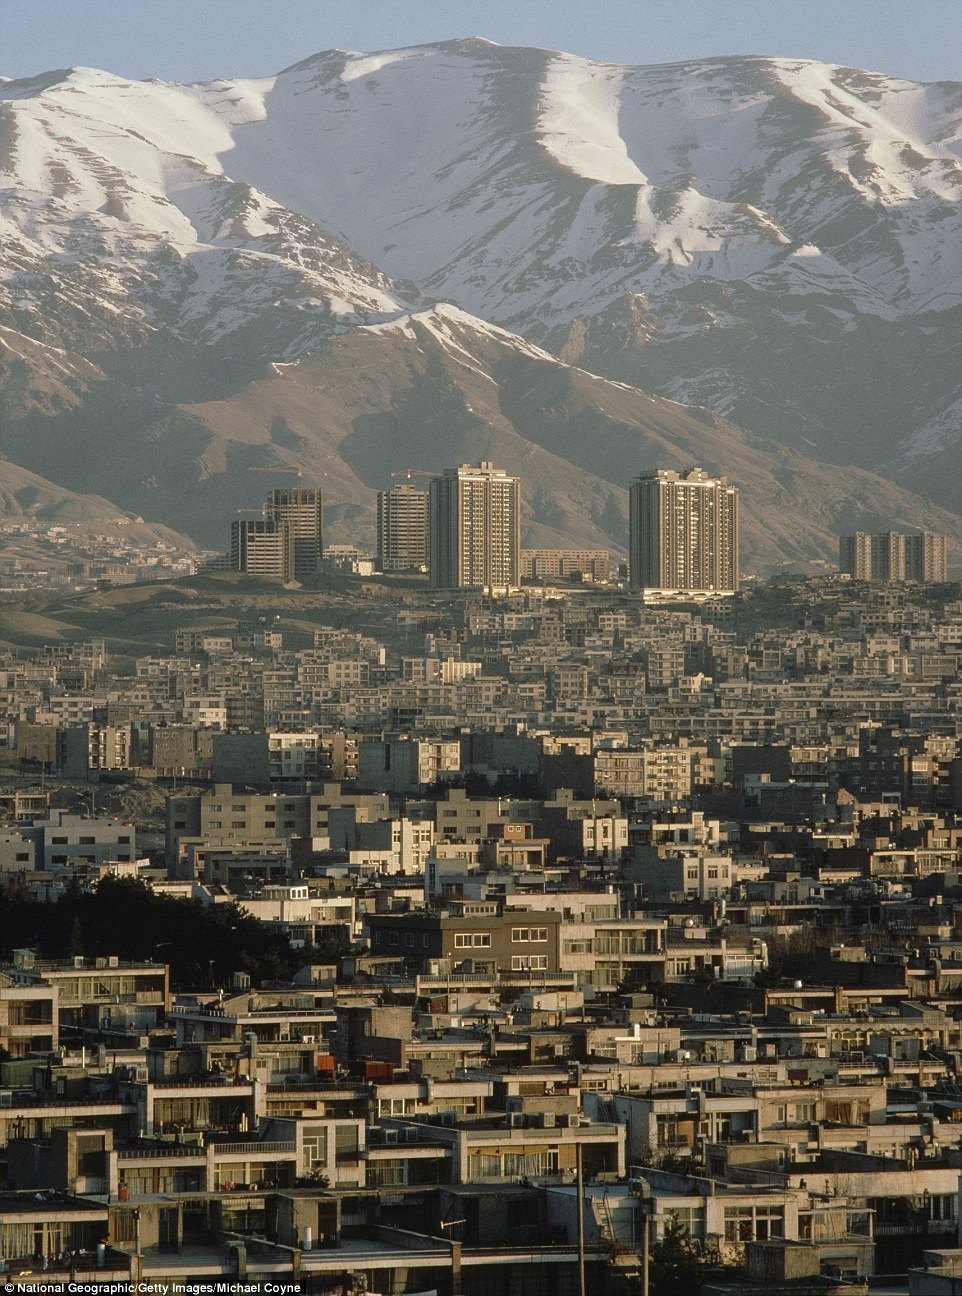 Iran before the revolution shows a stunning contrast | Daily Mail Online